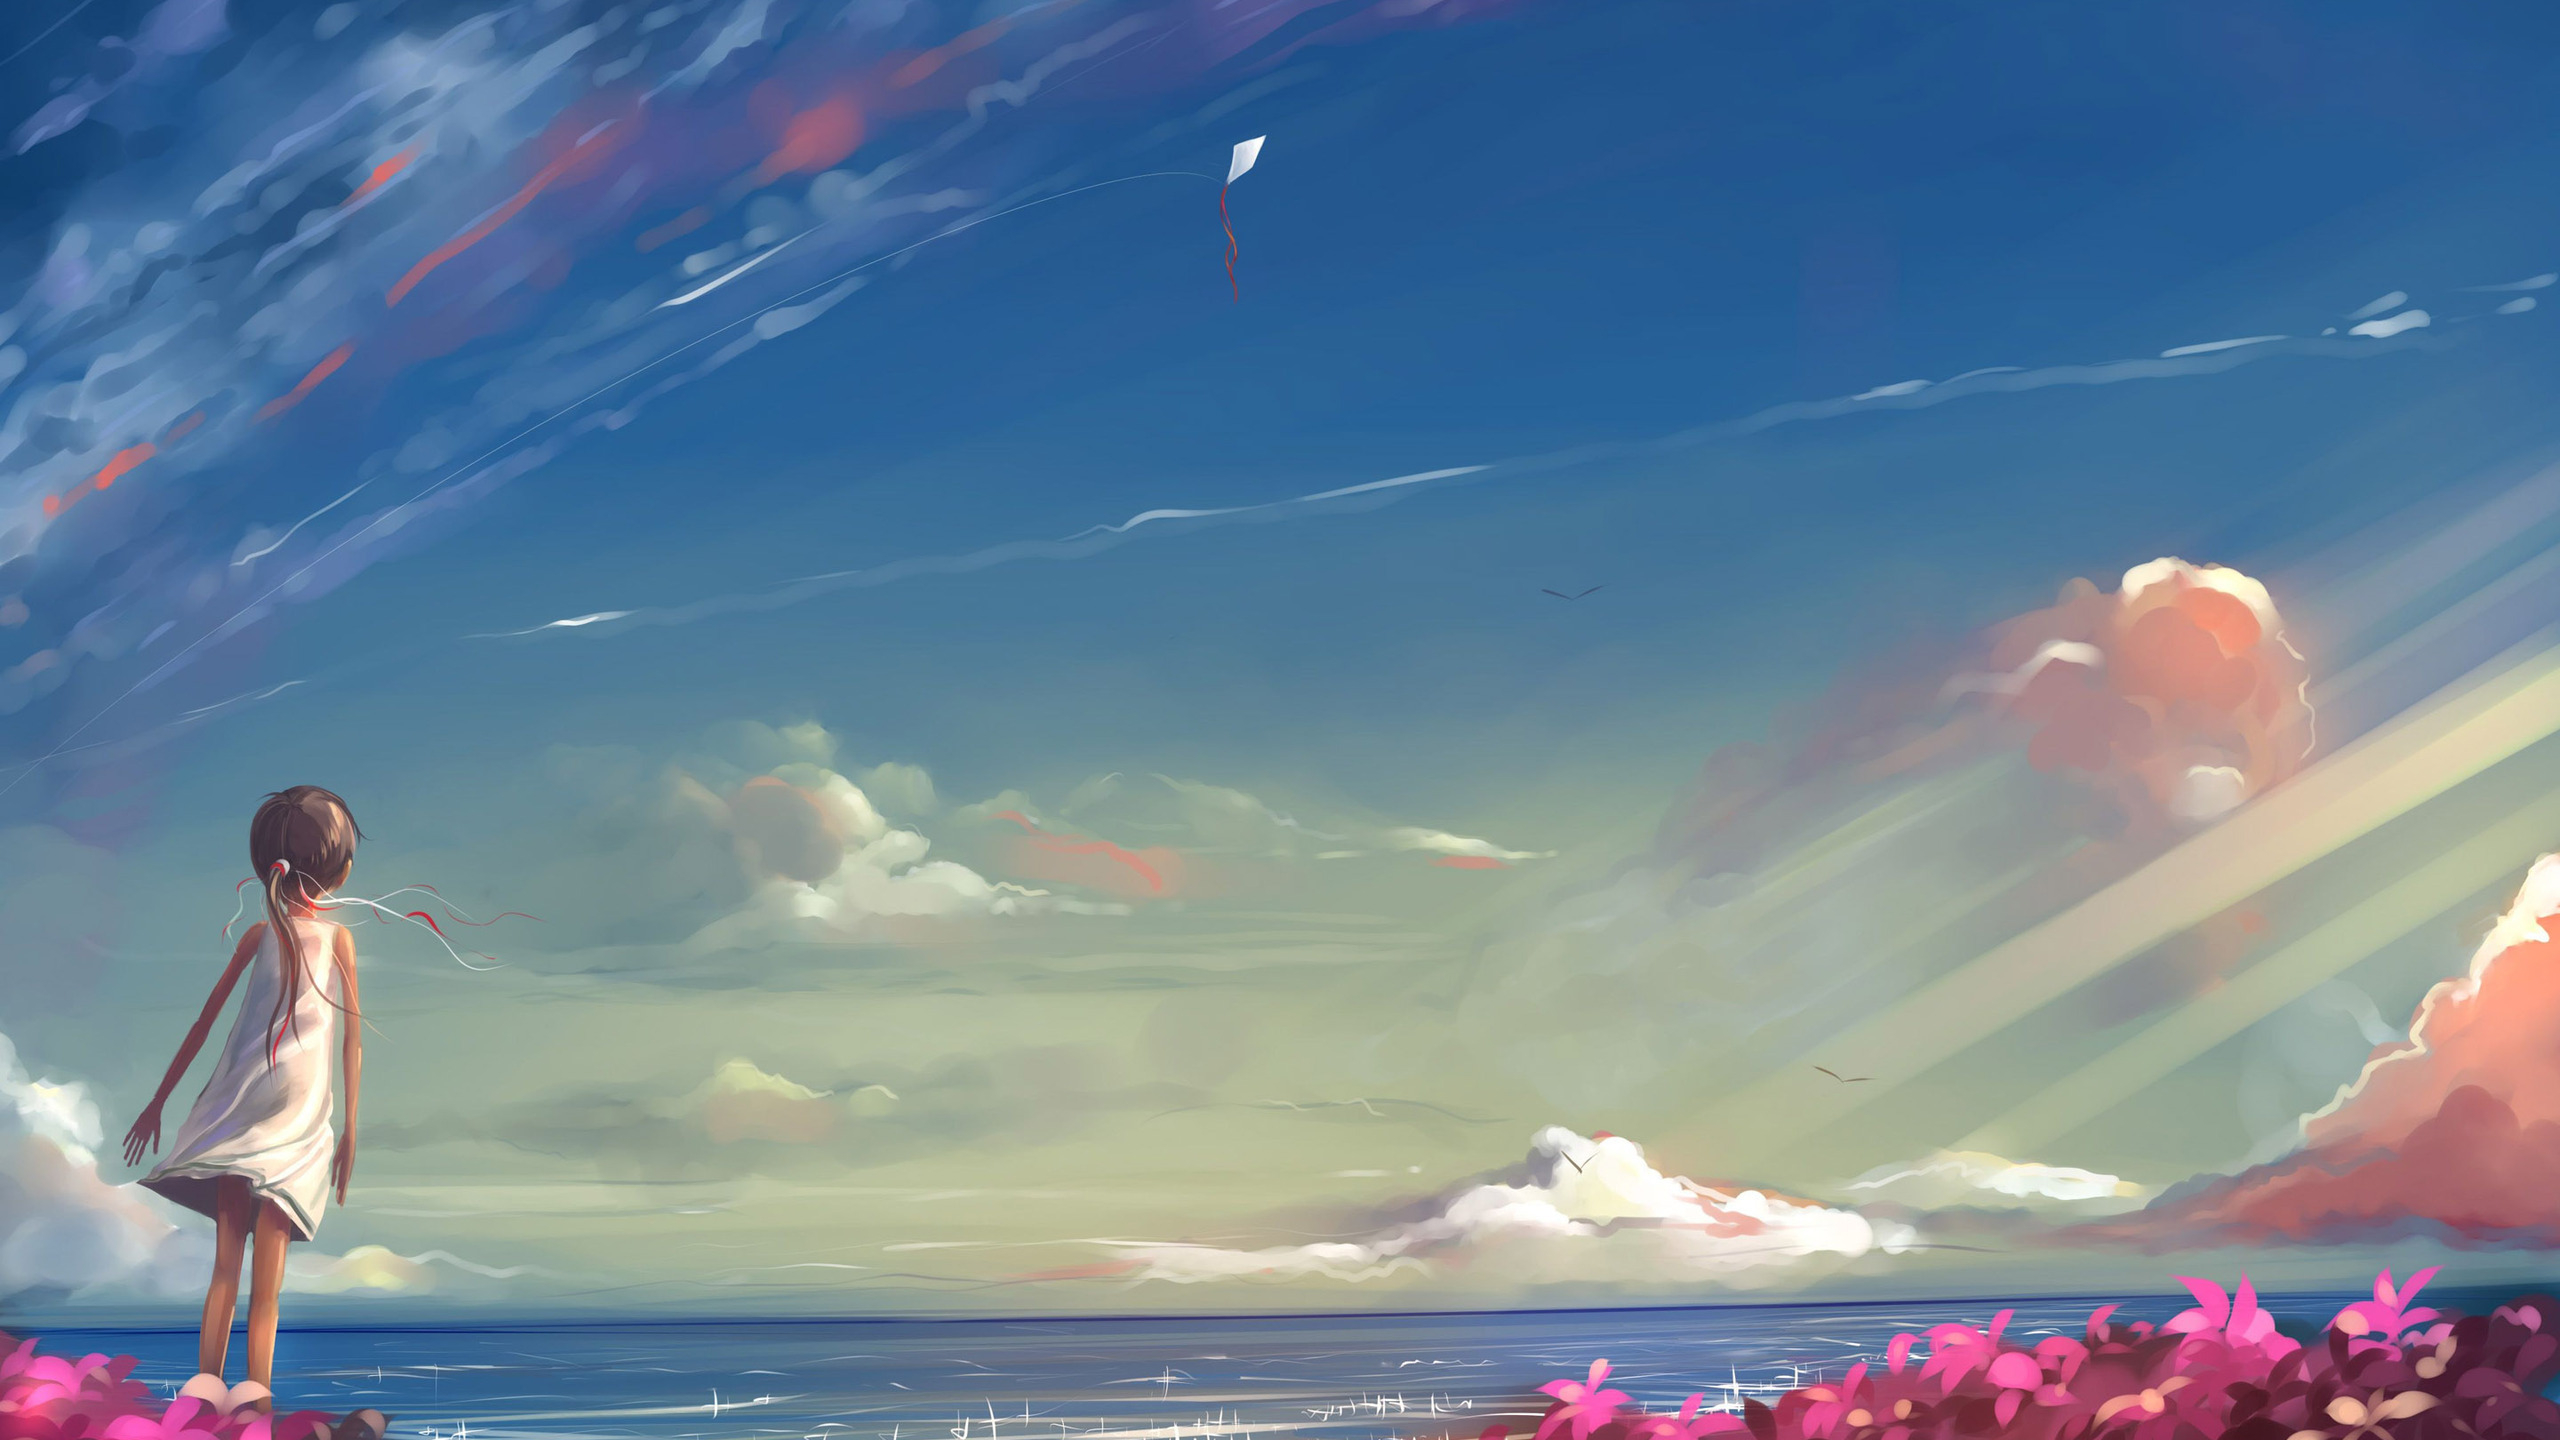 Anime Girl Looking At Sky Hd Anime 4k Wallpapers Images